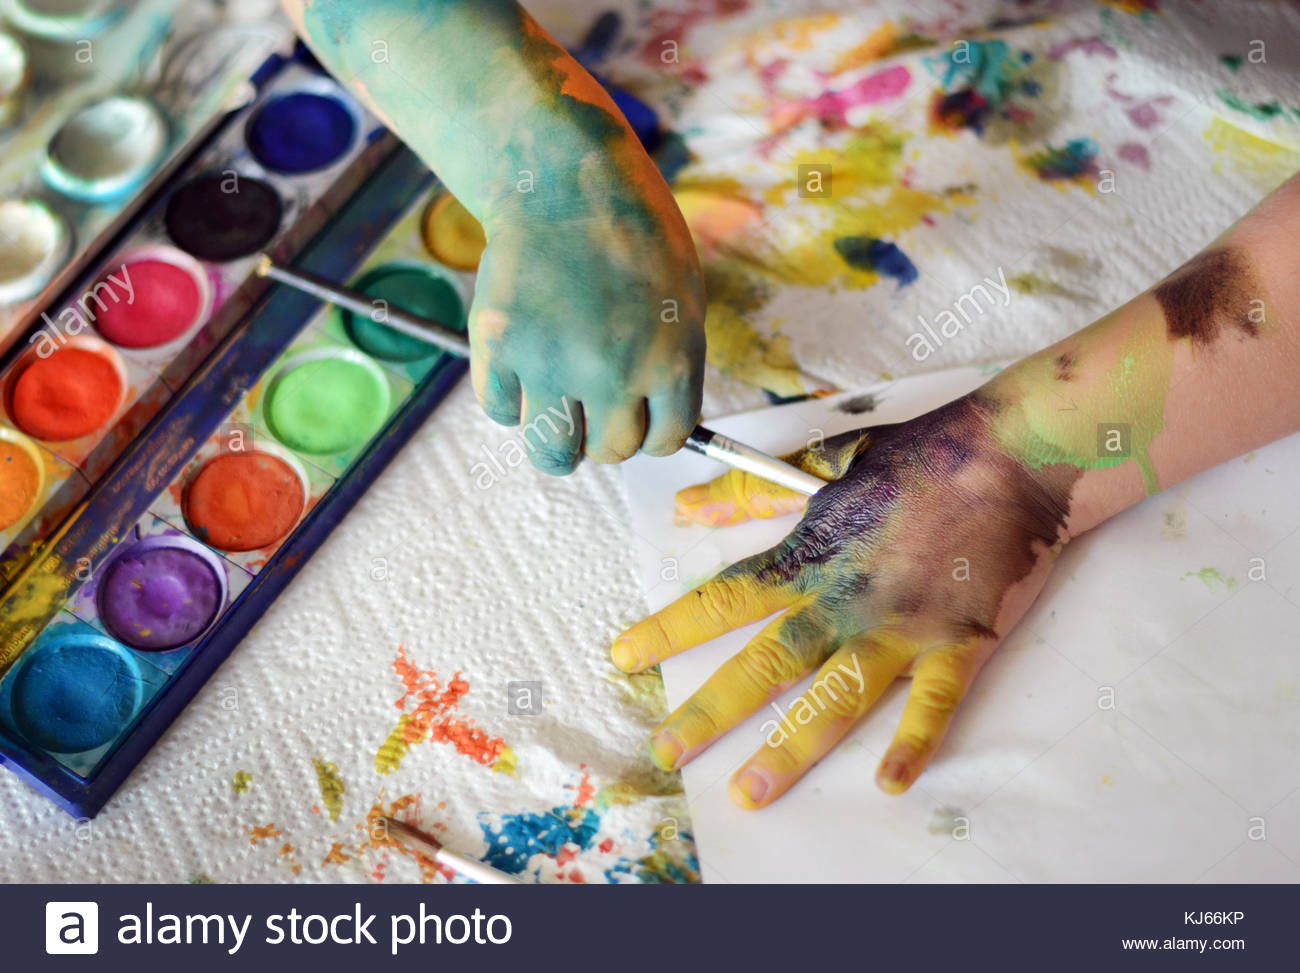 Toddler painting - Stock Image